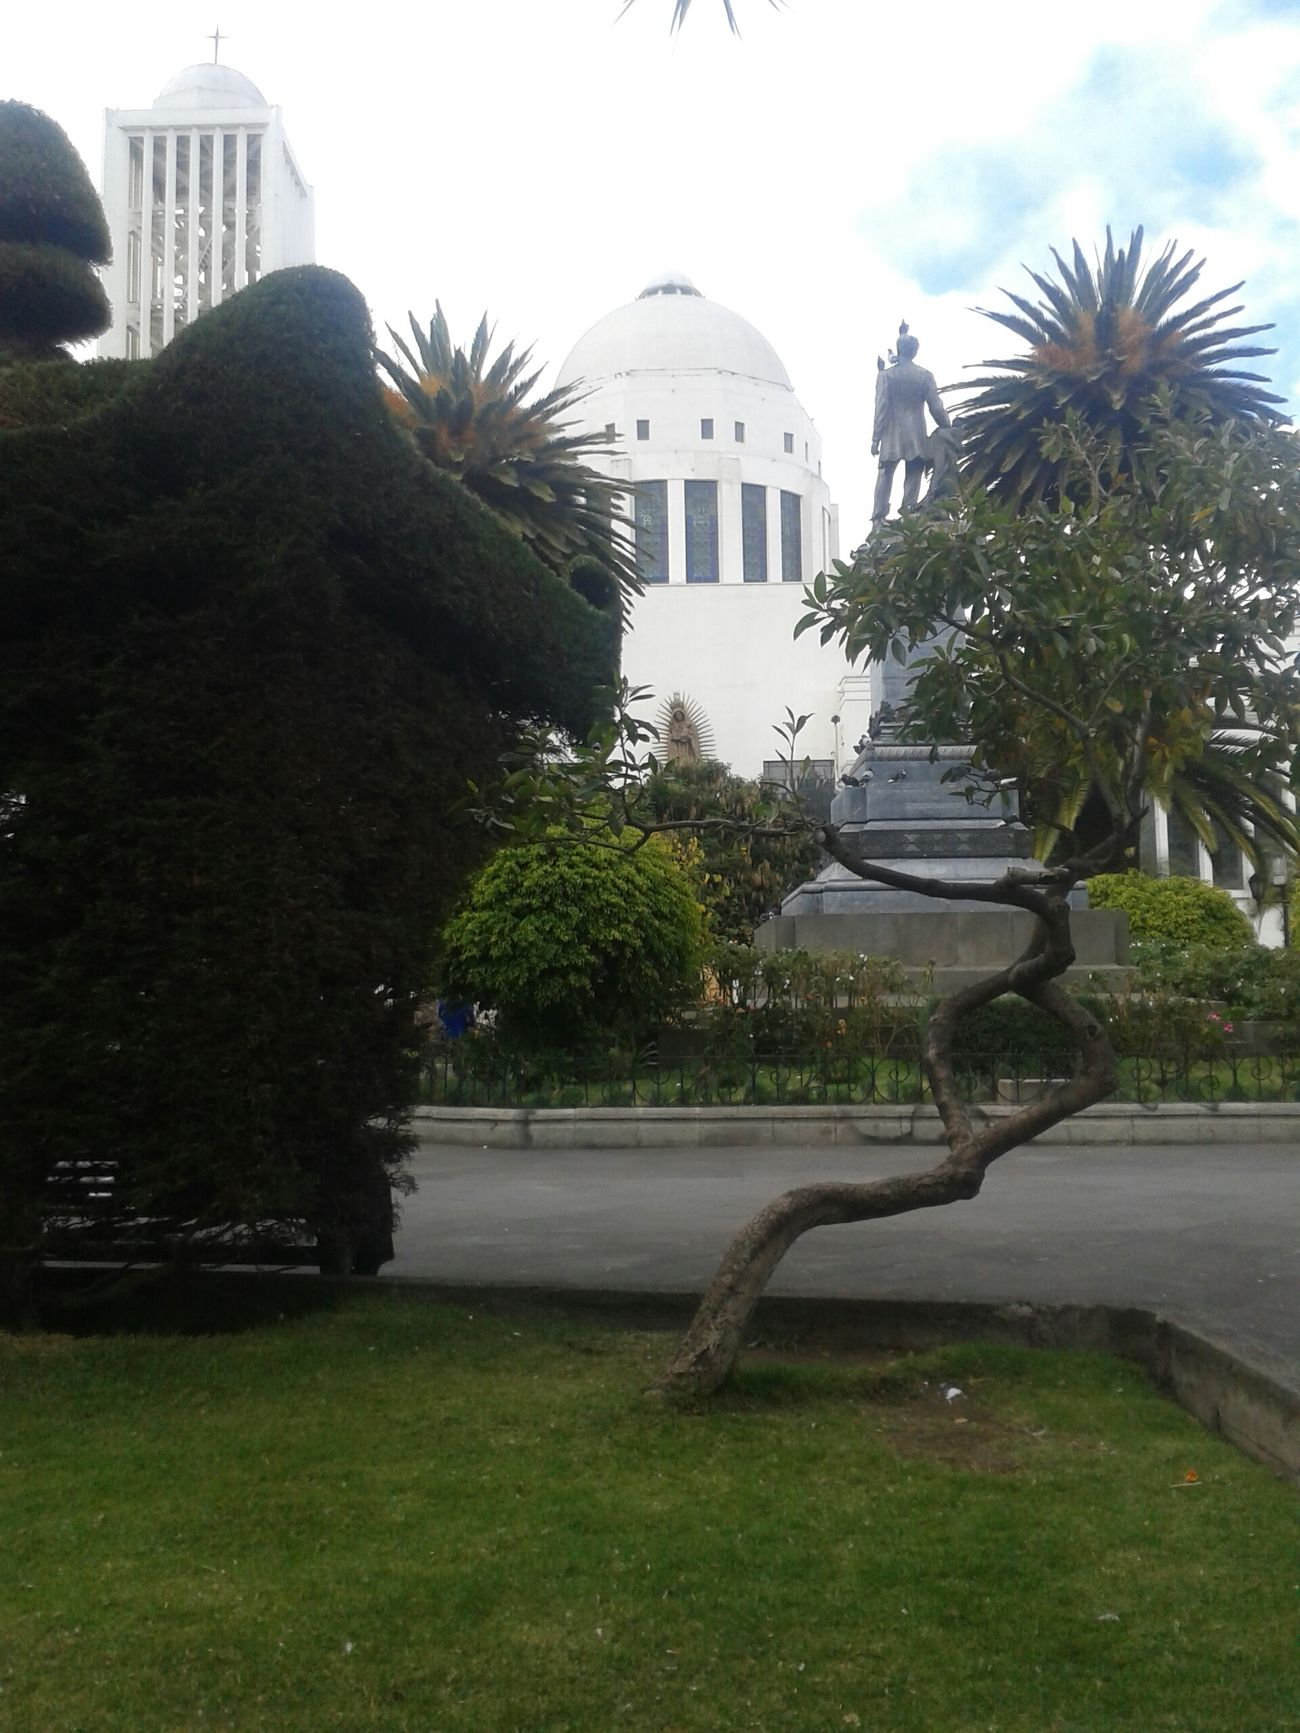 My Country In A Photo Catedral Ambato Parques  Sabadoatarde Esquinazo Land Scape